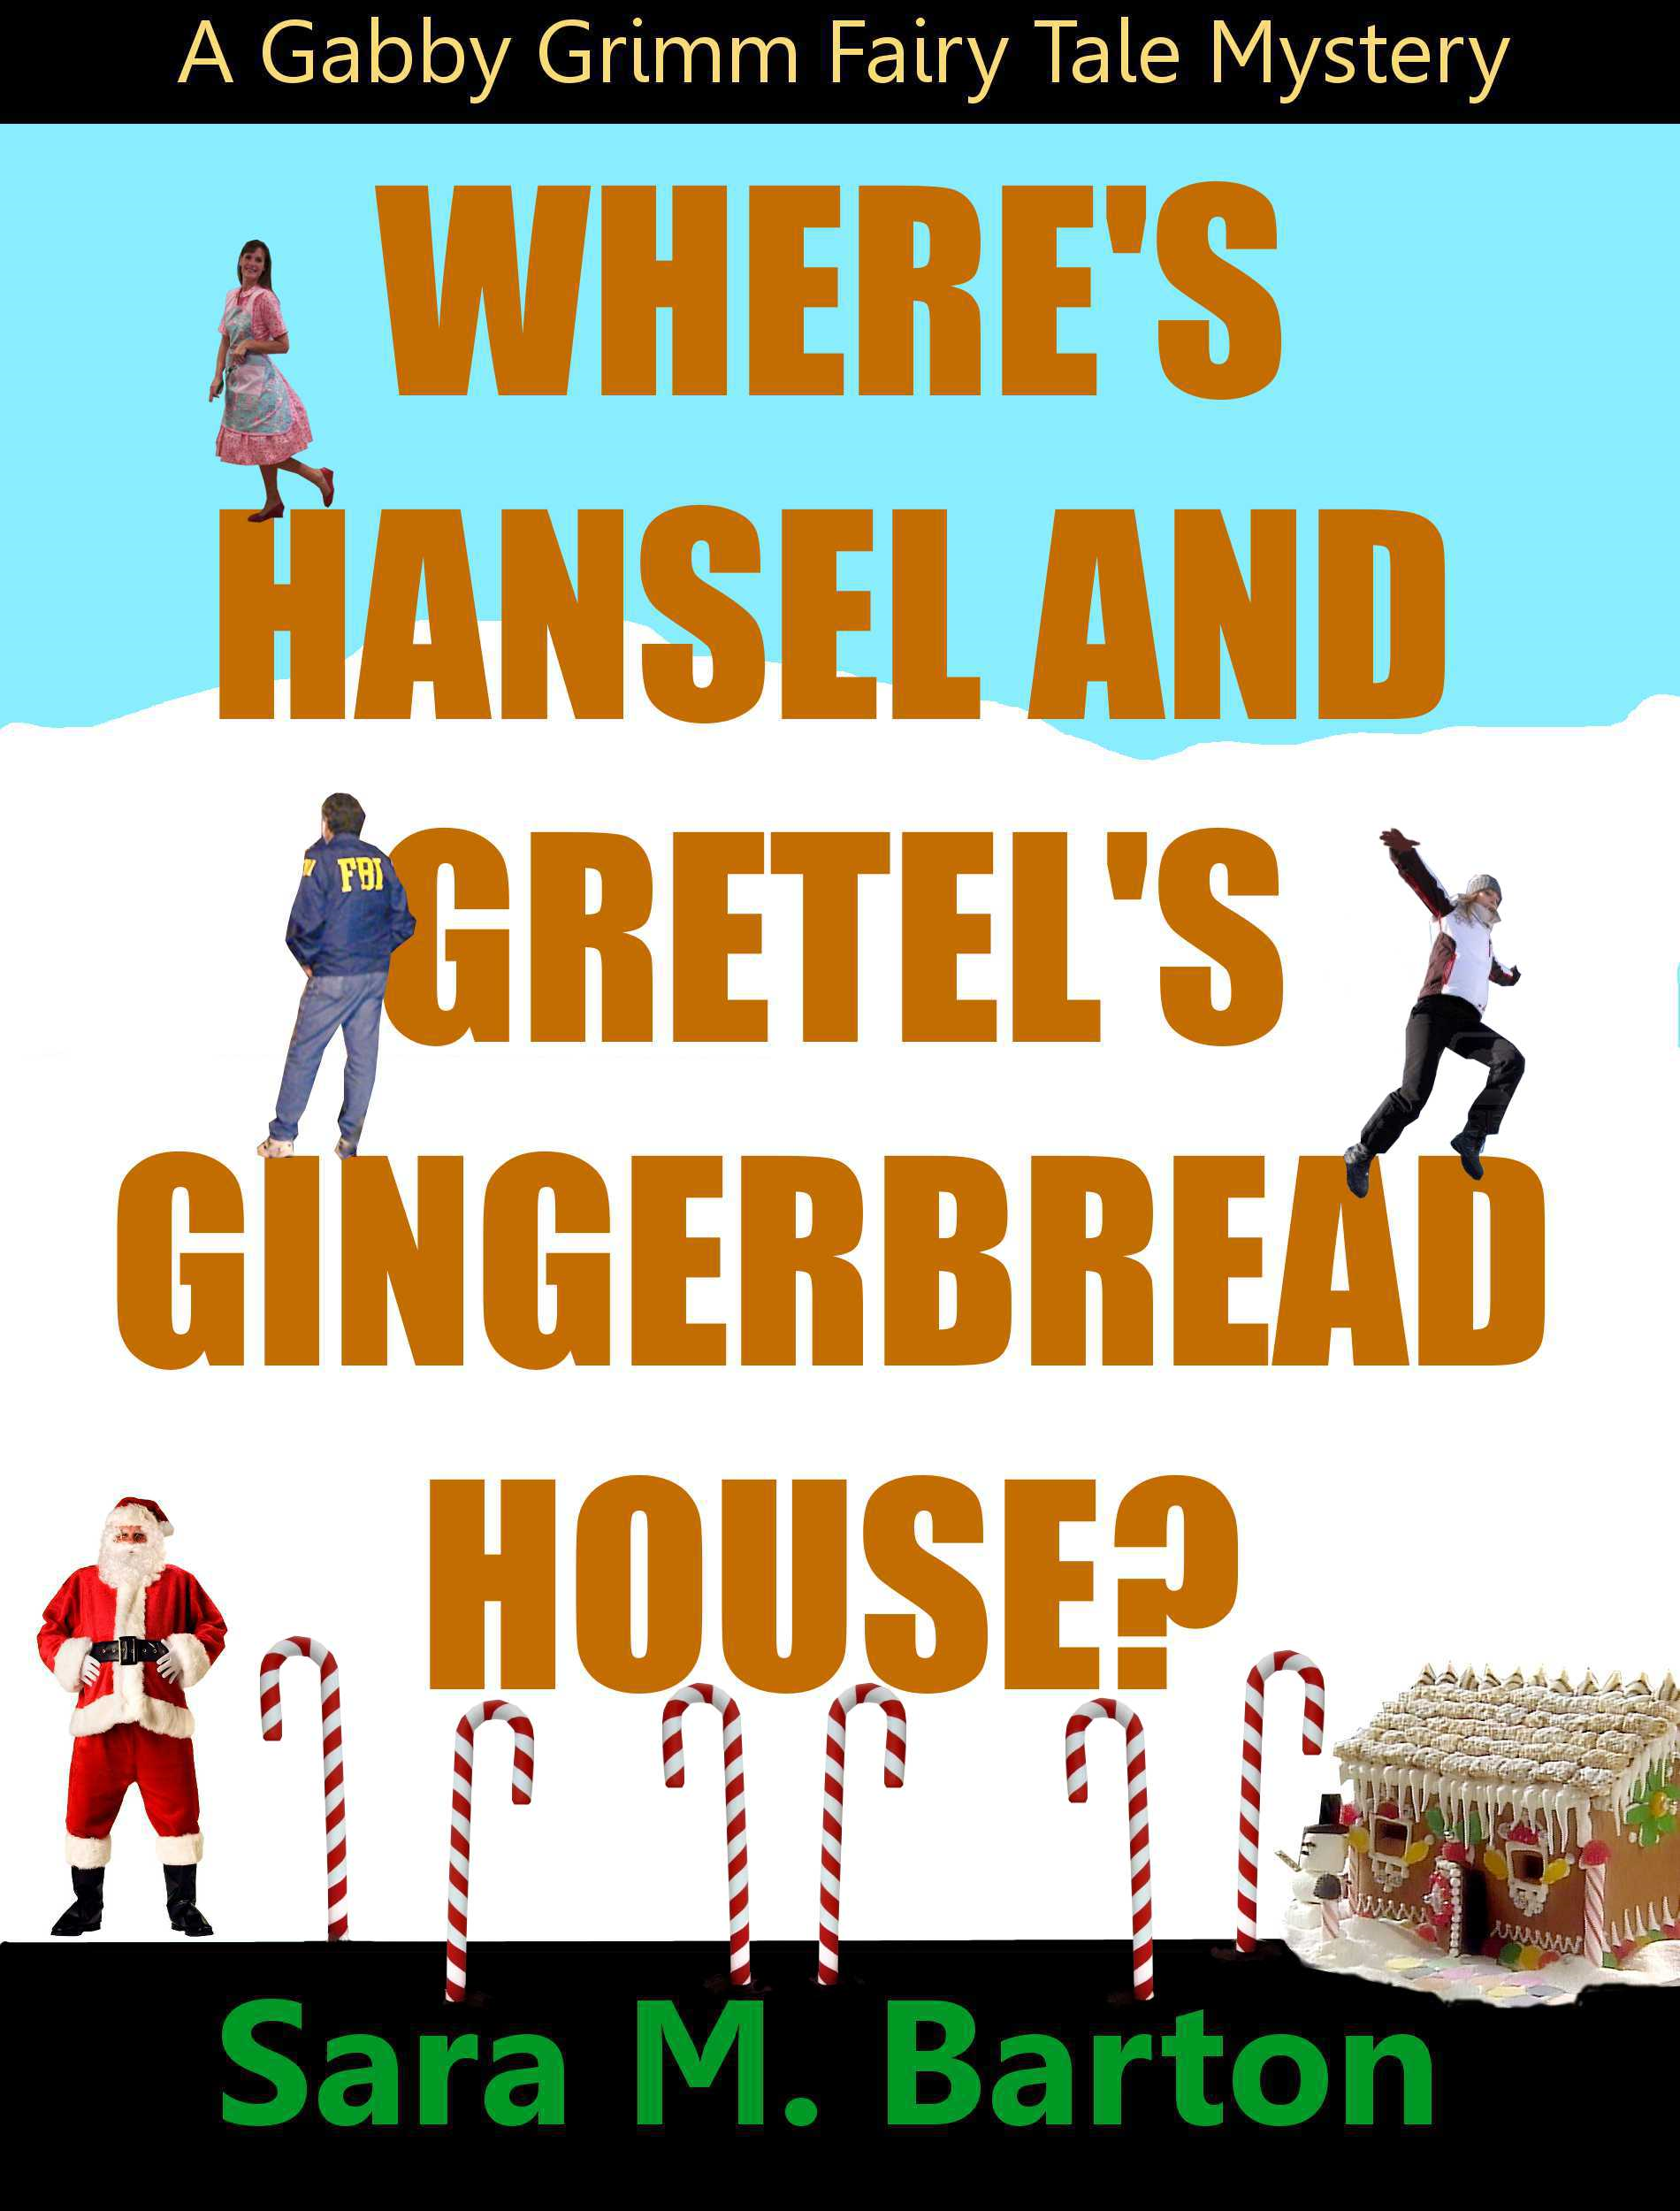 Where's Hansel and Gretel's Gingerbread House?